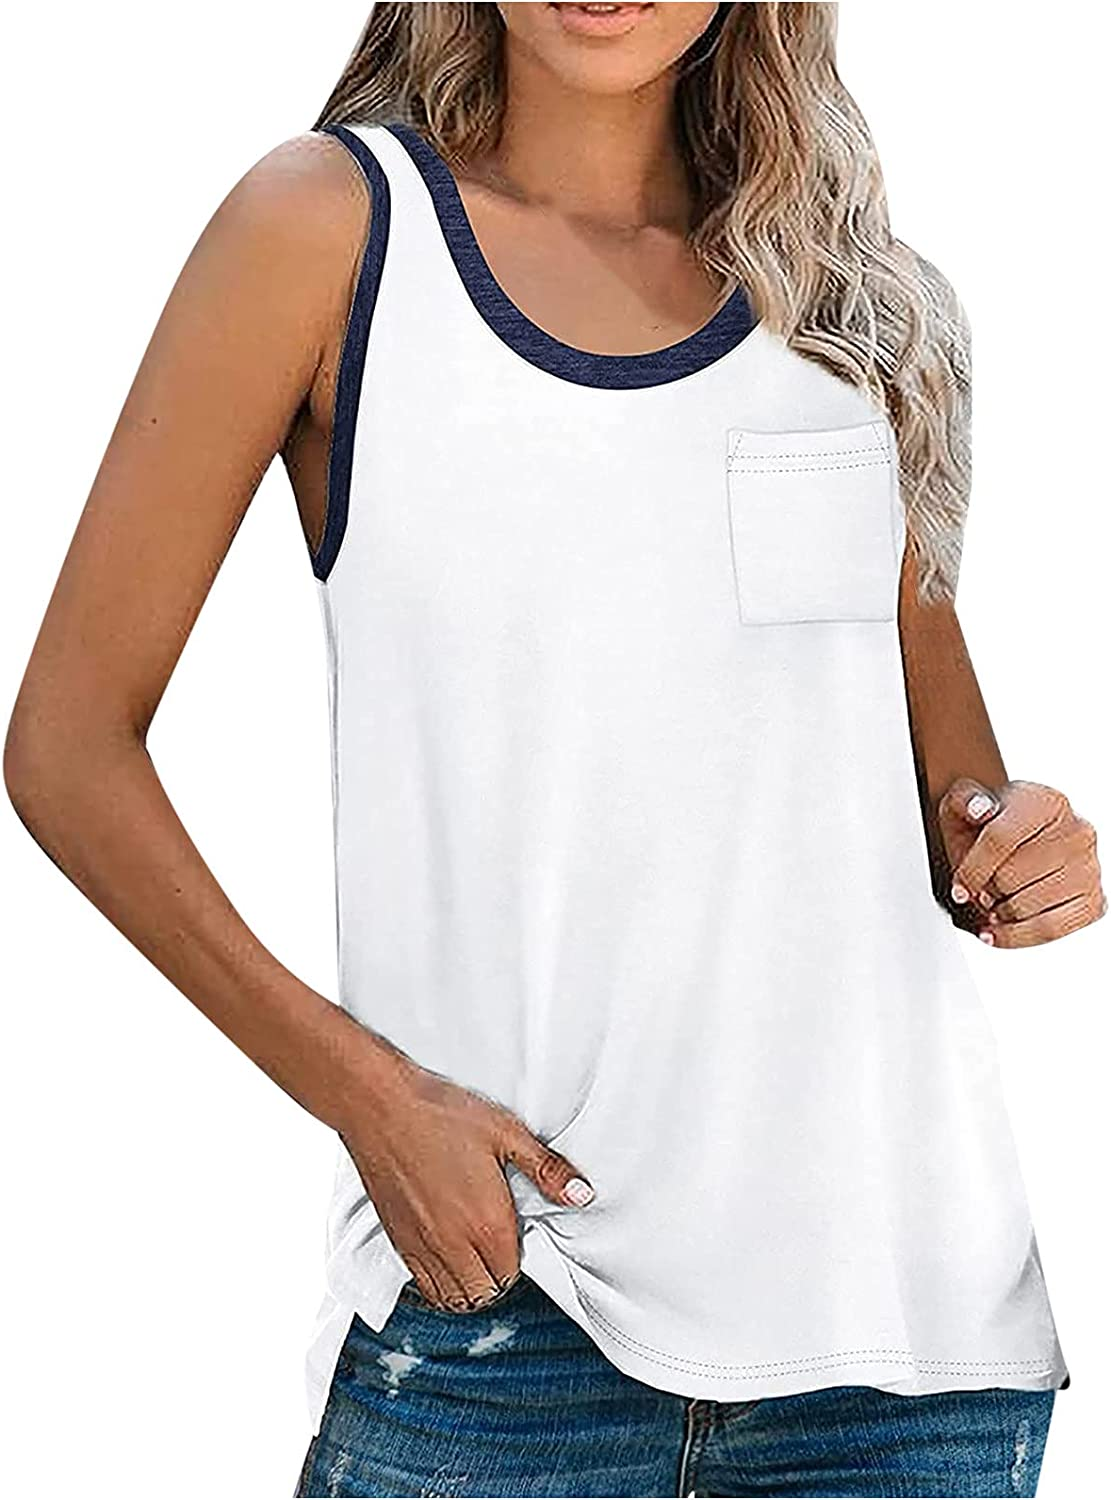 Women's Sleeveless Tank Top Rond Neck Splicing Camisole for Leggings Pocket Front Casual Cami Top